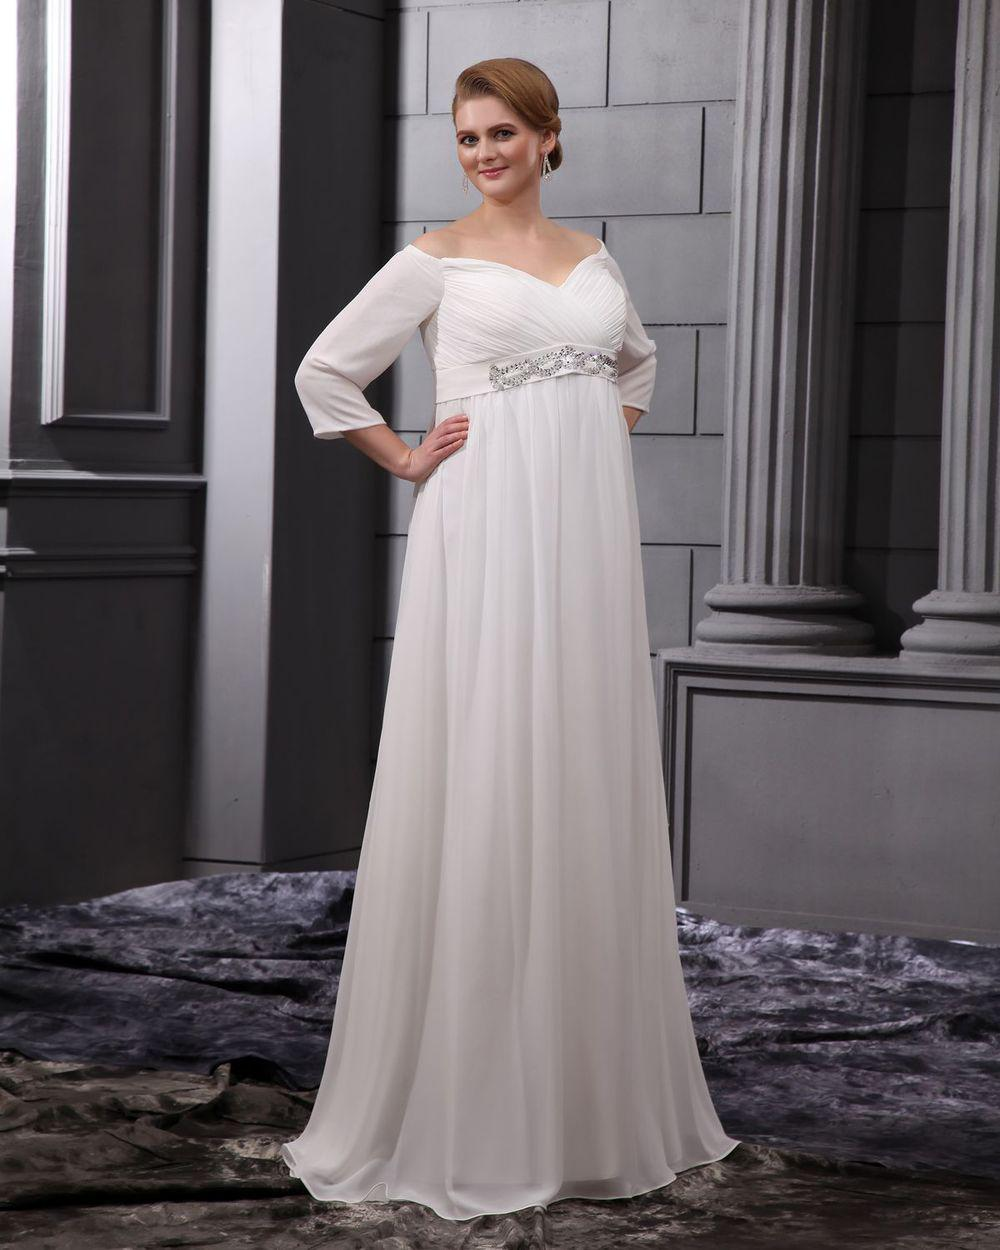 Discount 2013 Wedding Dresses Long Sleeves Chiffon Beads V